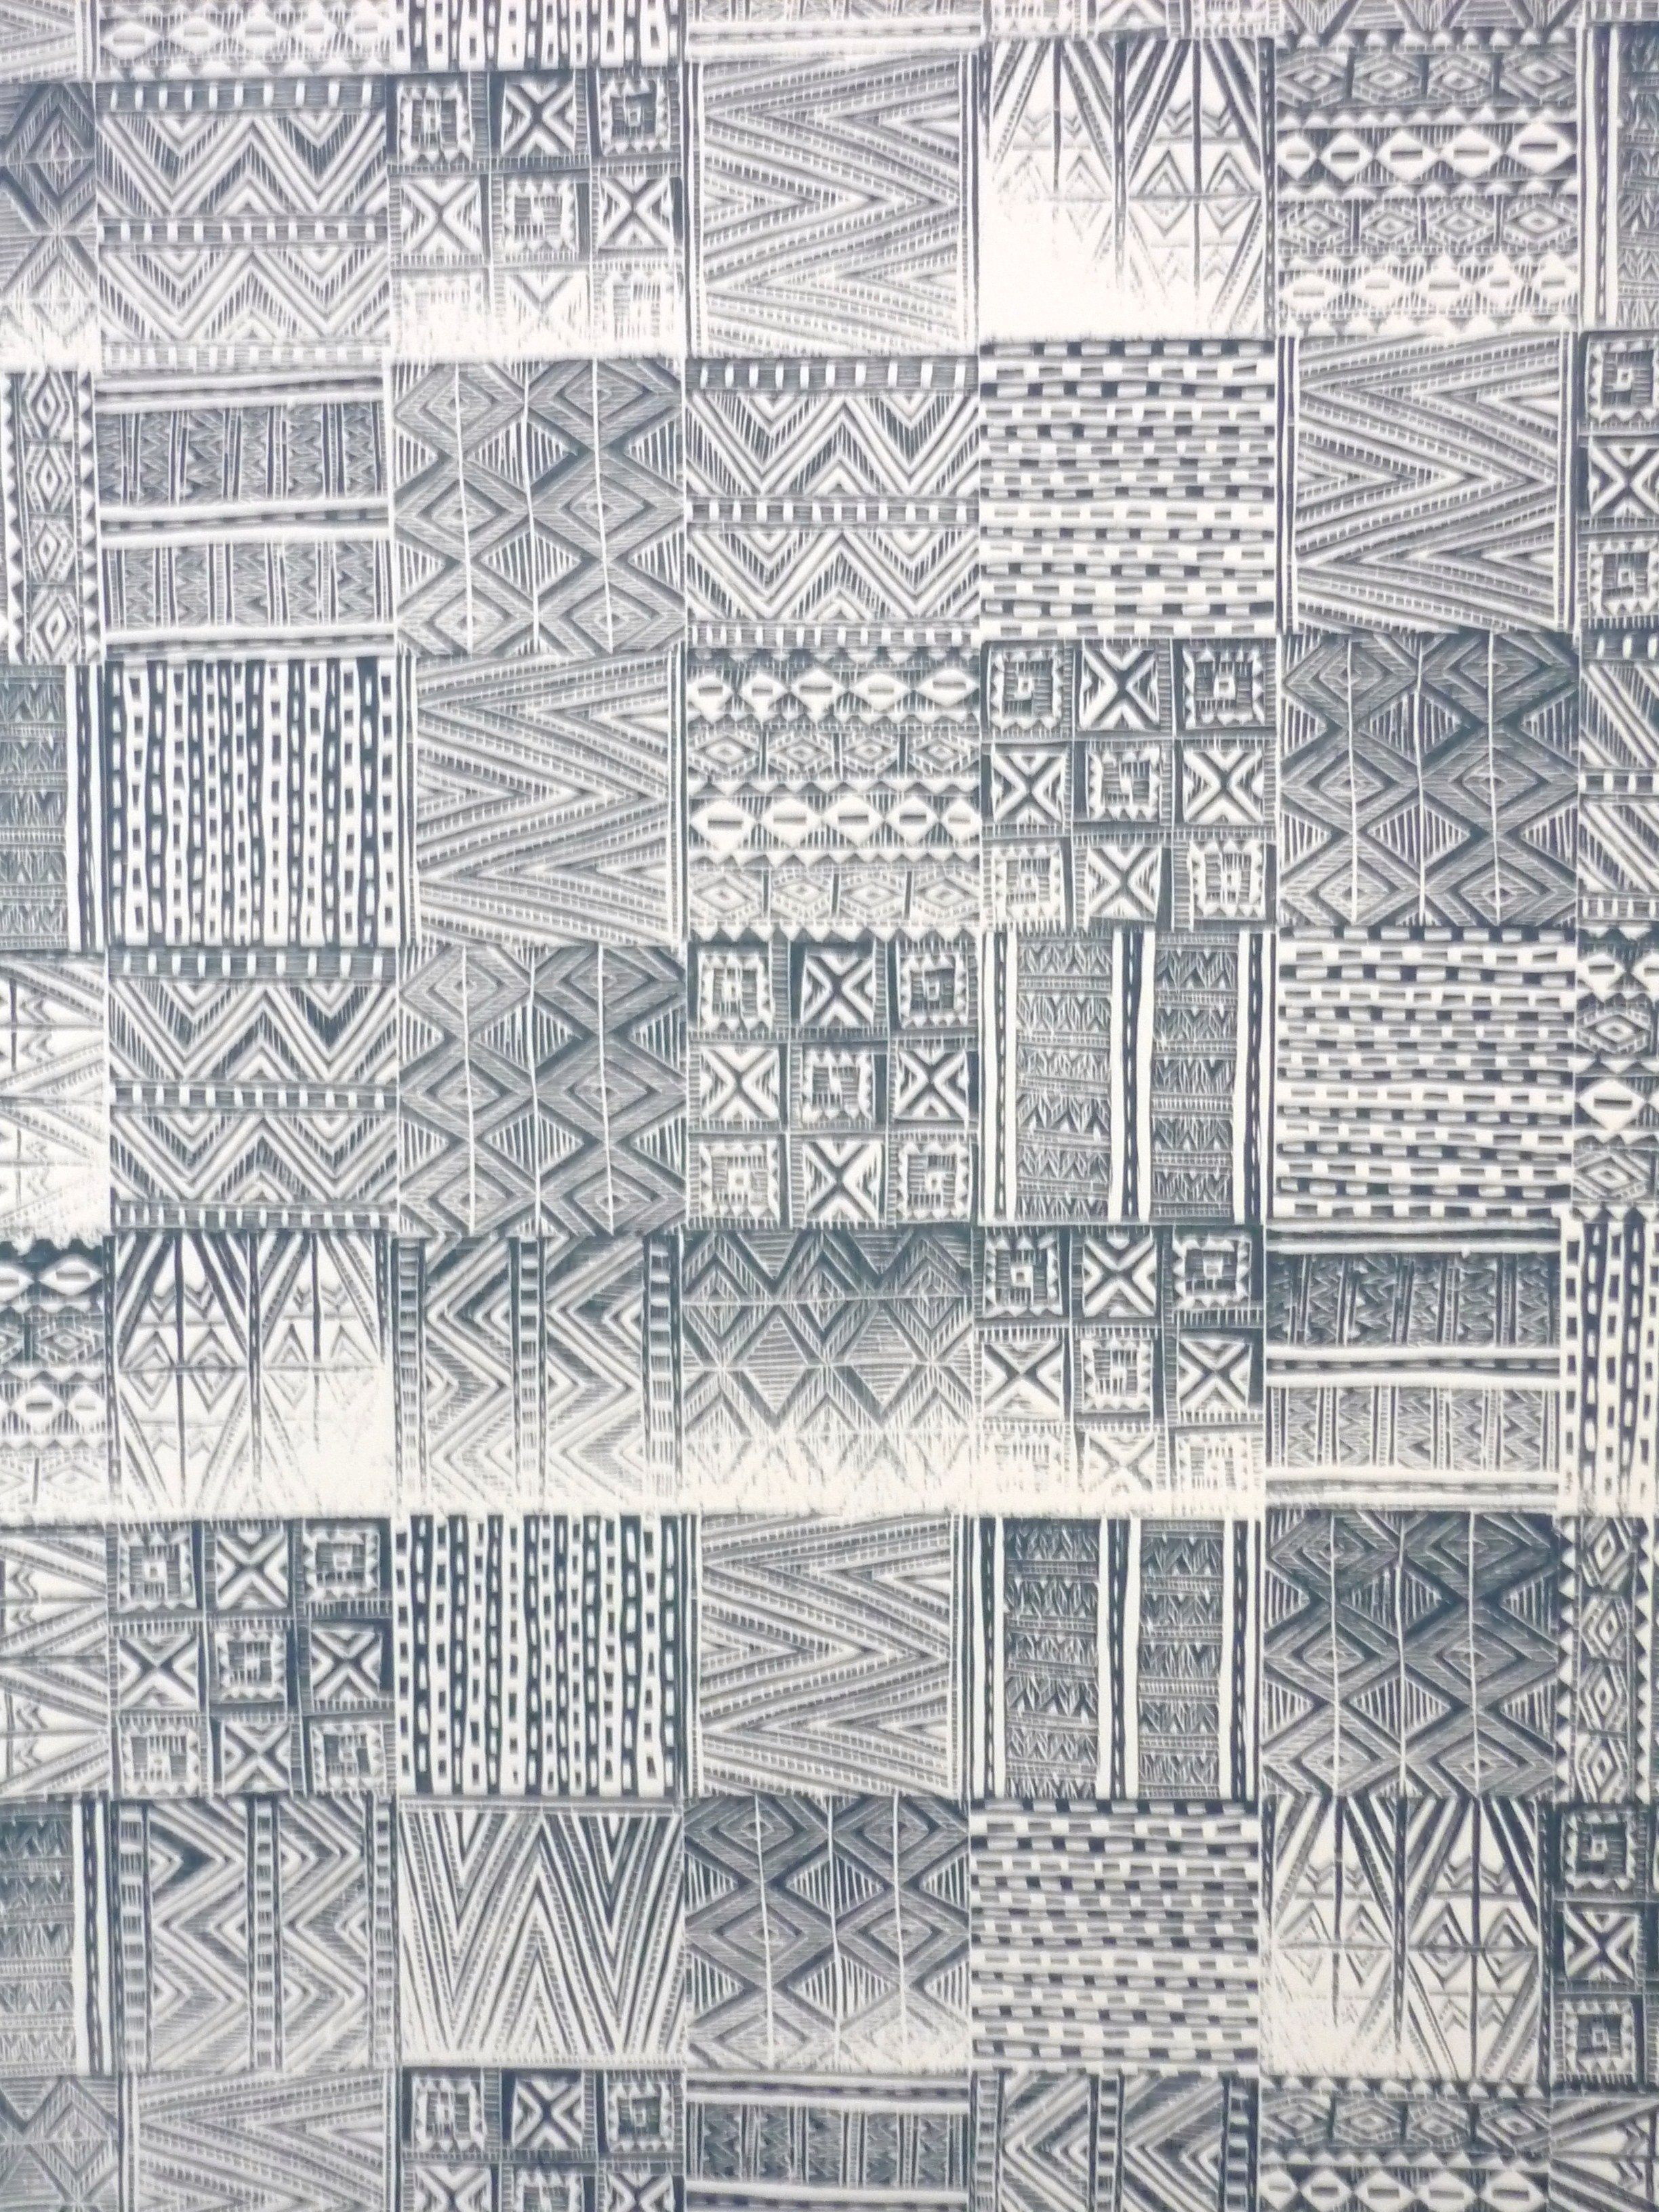 Folkloric Carvings wallpaper by India Rose Bird.